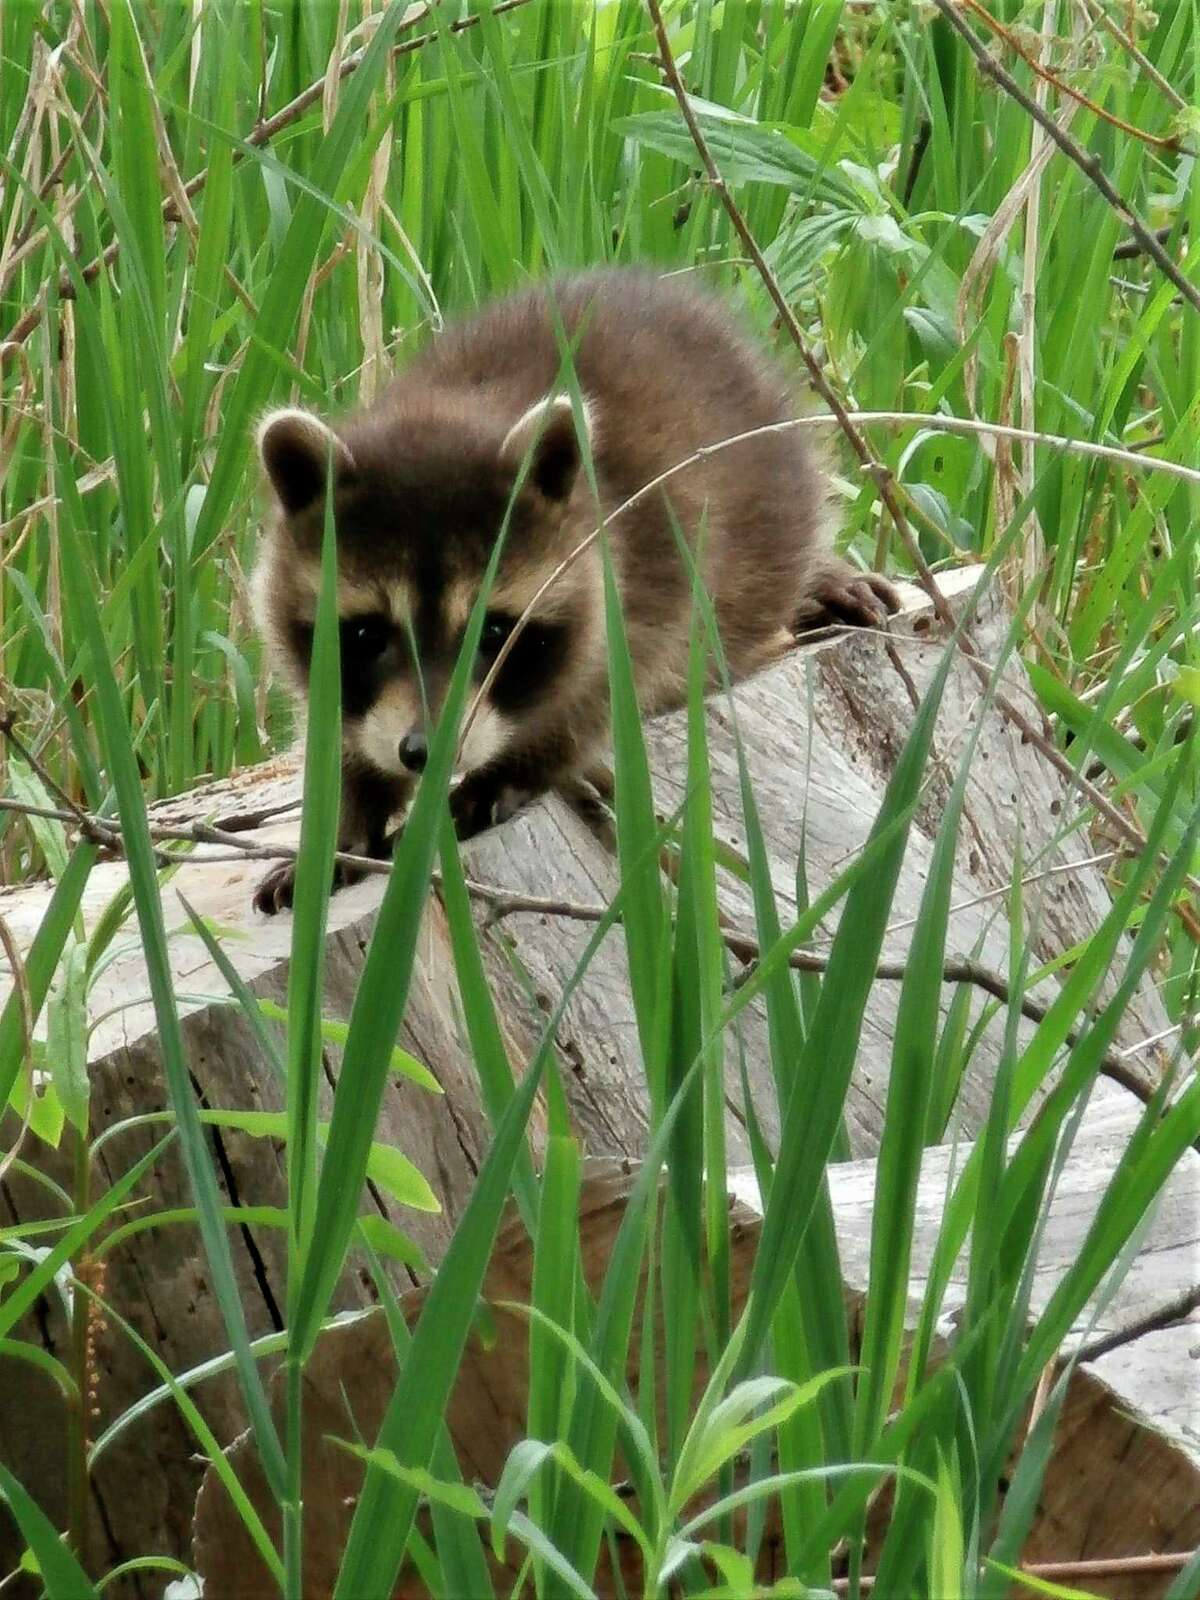 A baby racoonperches on a tree stump at the McLean Nature Preserve. (Photo provided)